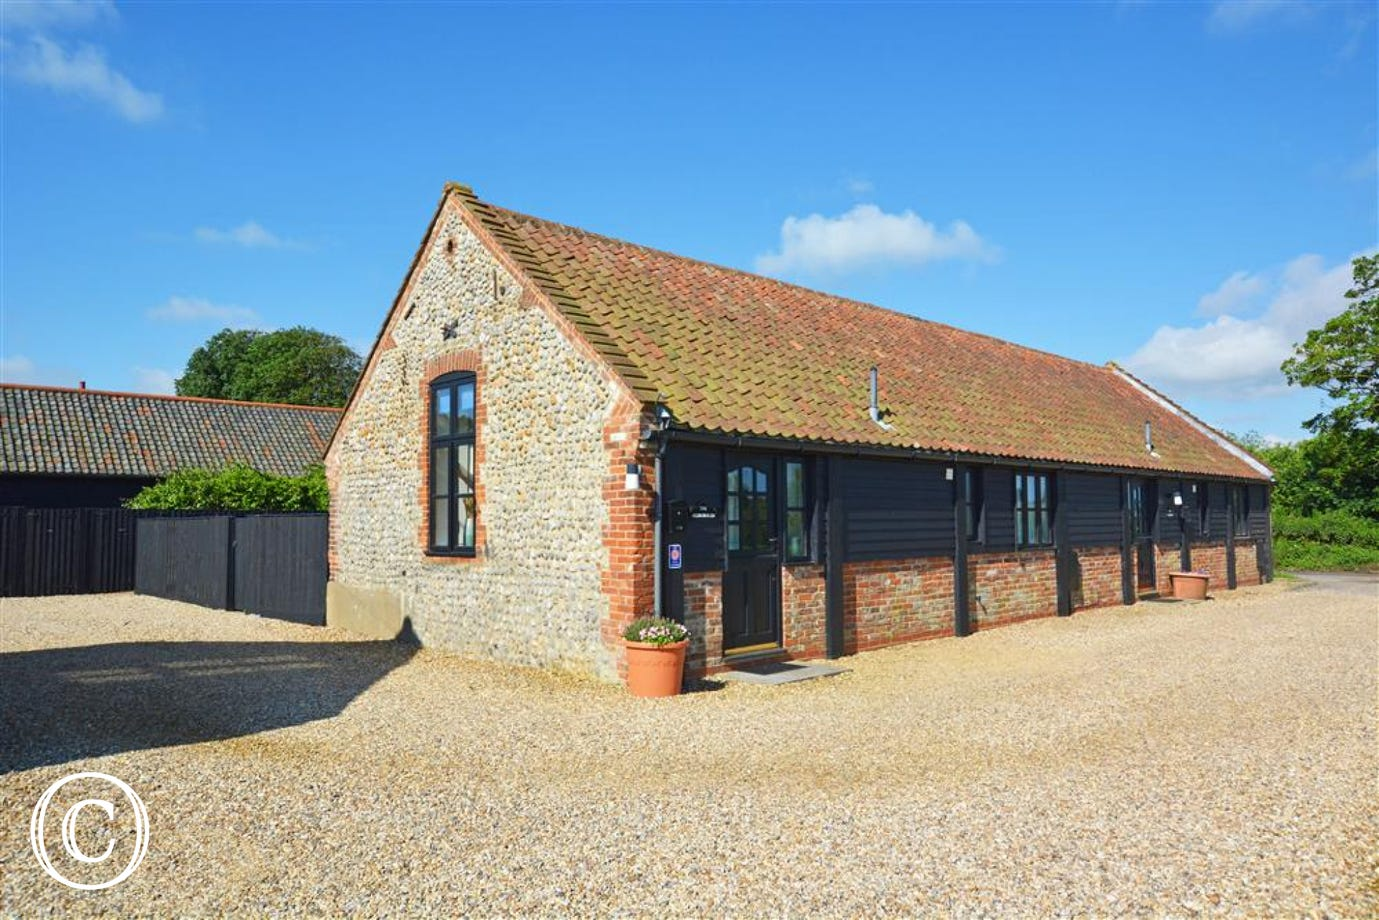 Exterior image of this lovely barn conversion